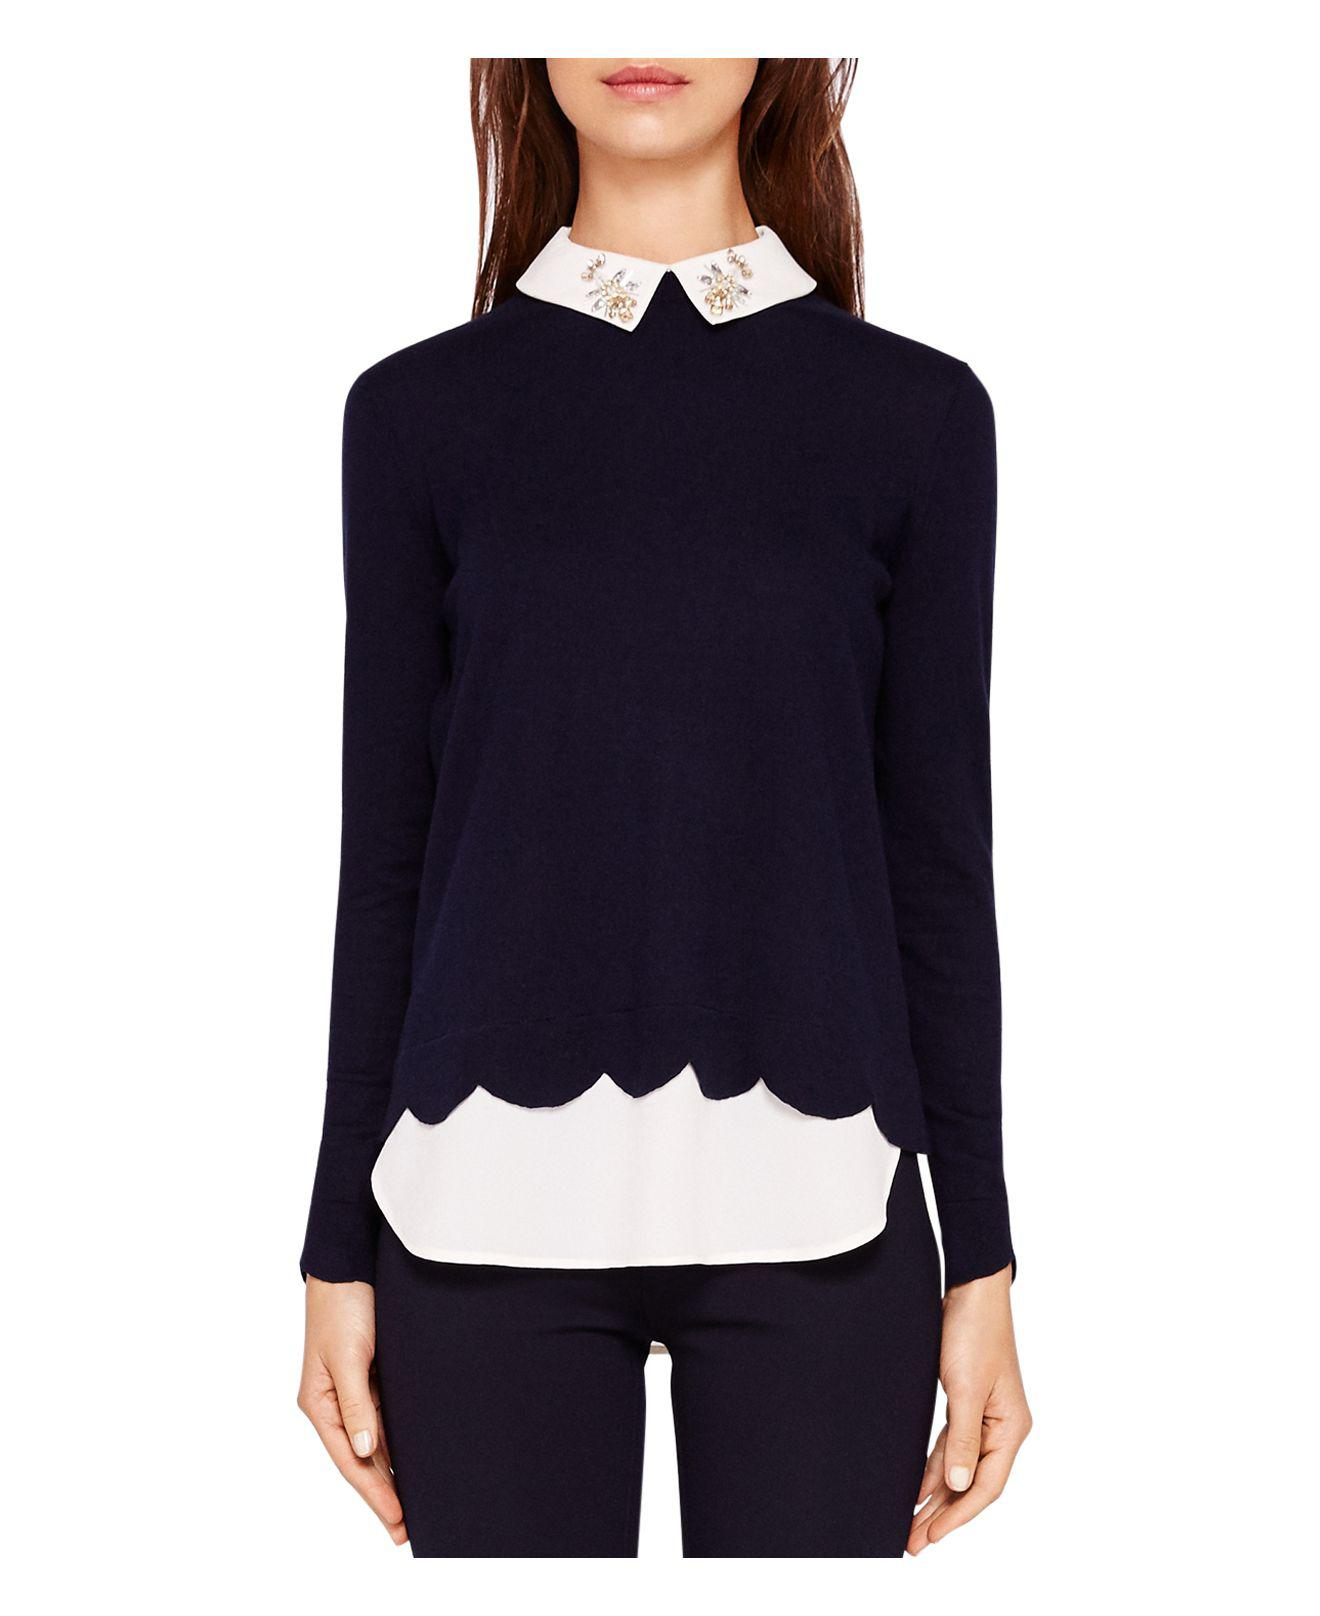 bcc92946cc4fb Lyst - Ted Baker Suzaine Layered-look Sweater in Blue